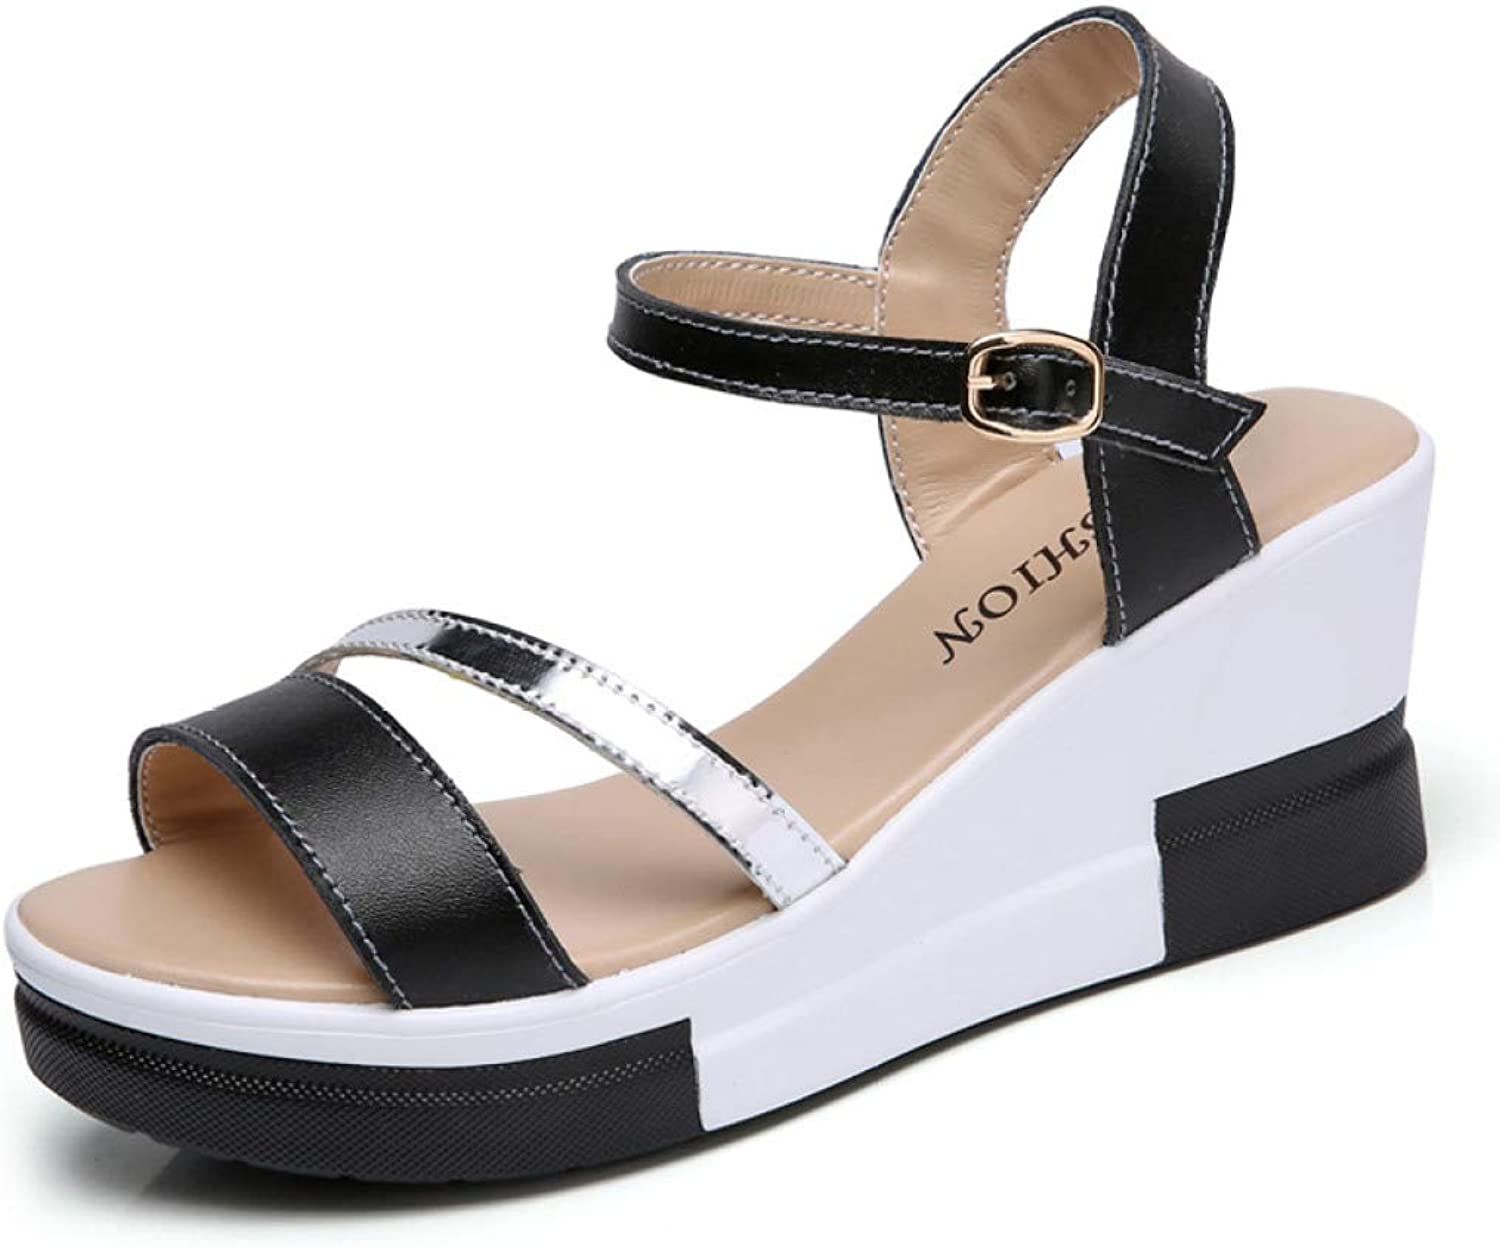 MEIZOKEN Womens Wedge Sandals Ladies Summer Buckle Ankle Strap shoes Elegant Open Toe Flatform Sandals